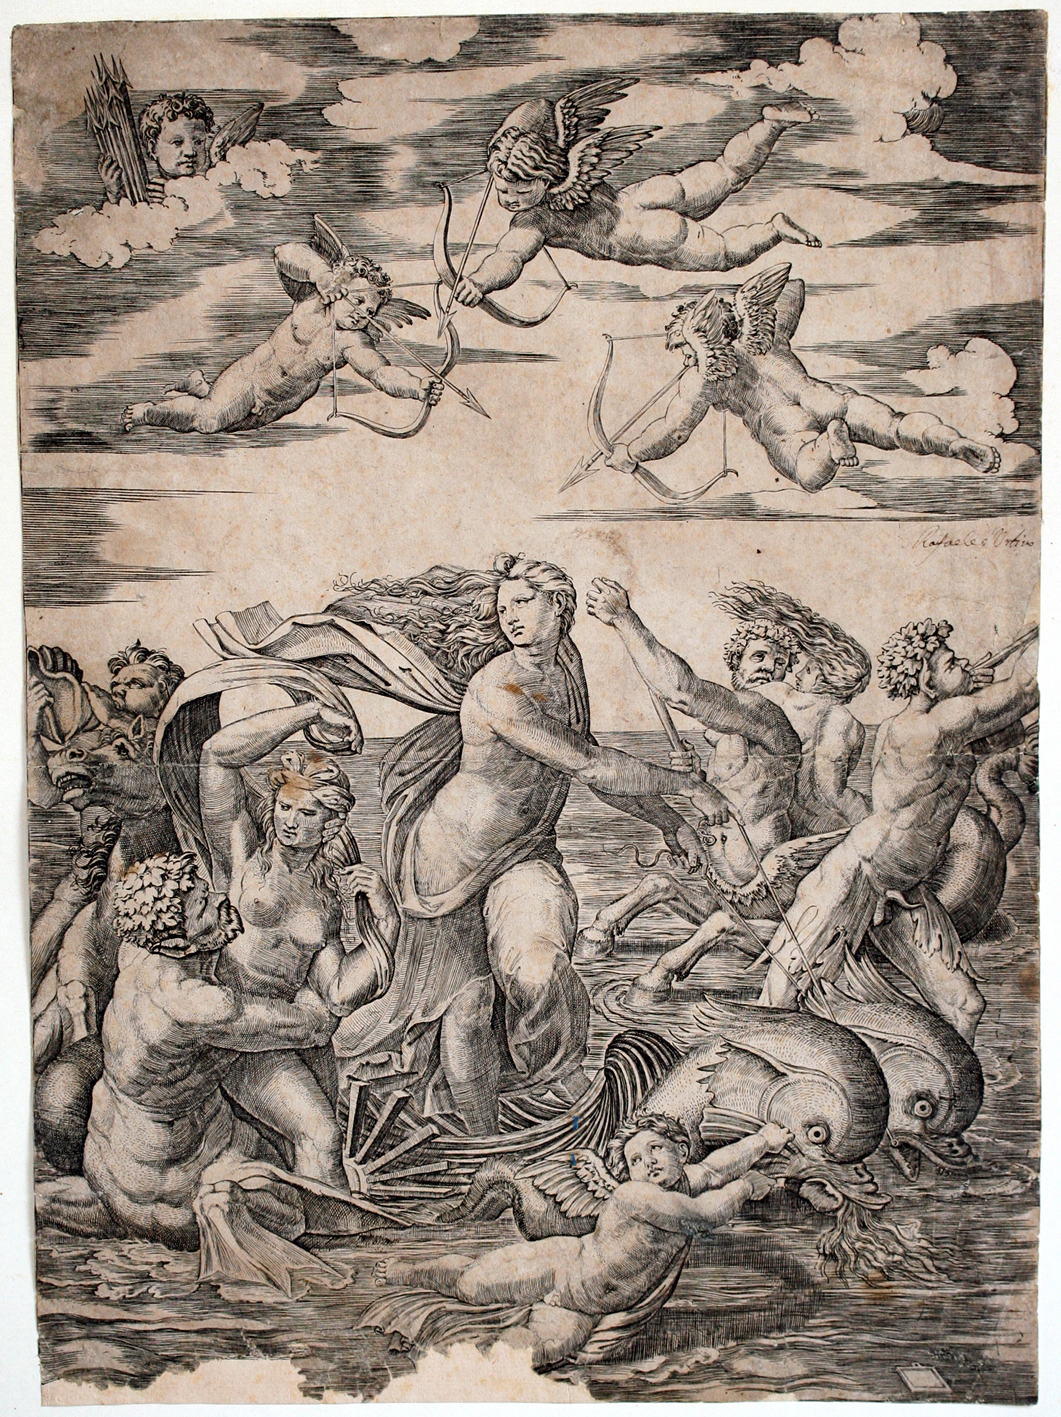 https://upload.wikimedia.org/wikipedia/commons/d/d8/Galatea_(engraving).jpg